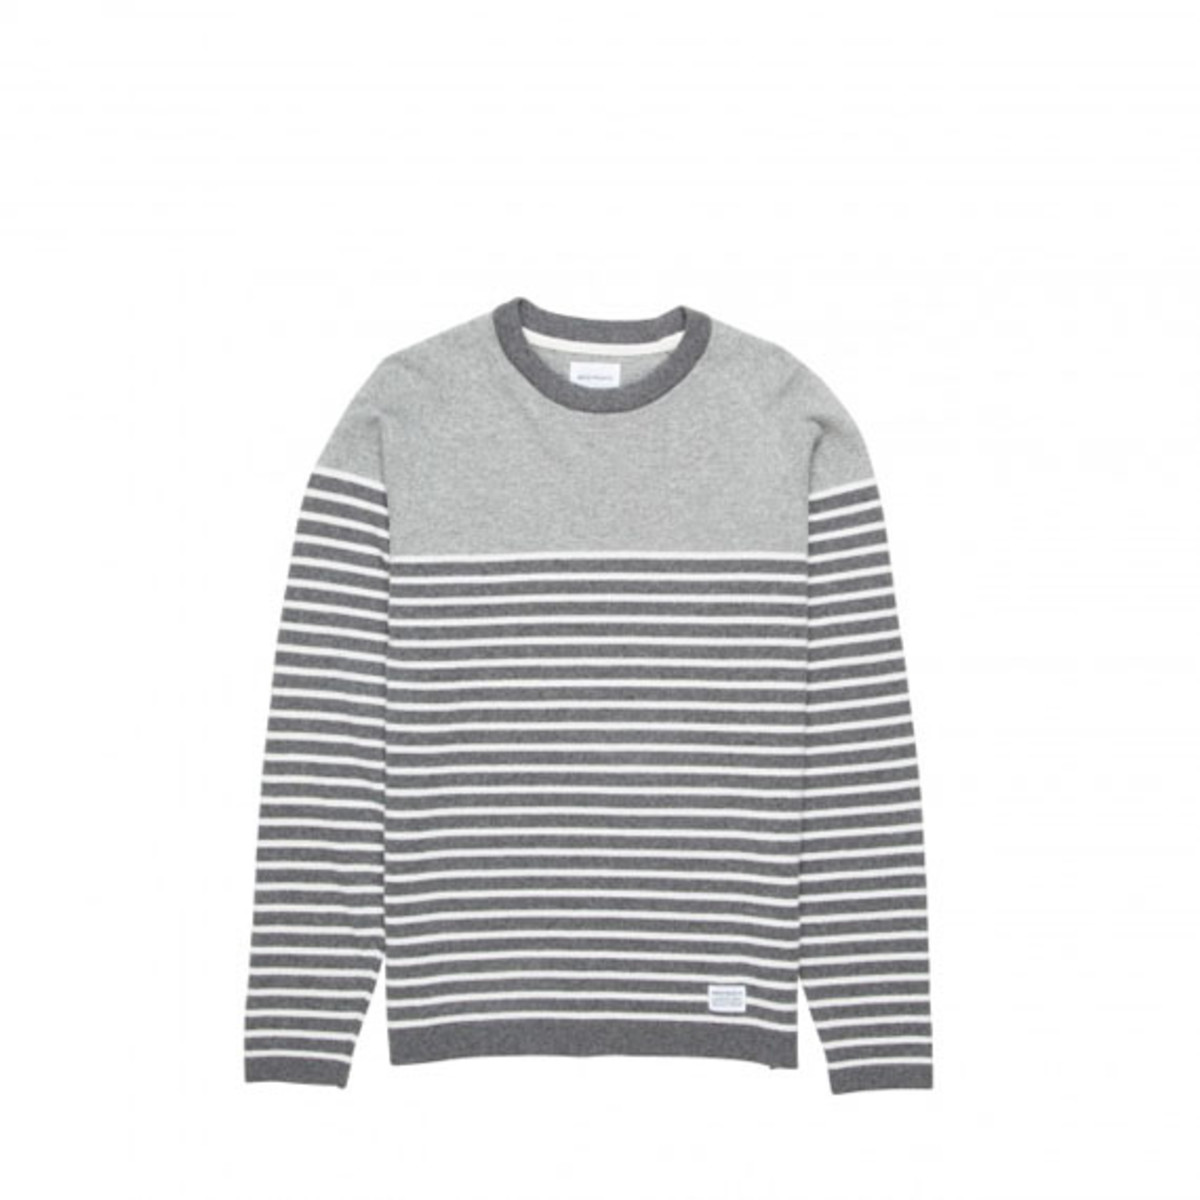 norse-projects-fall-winter-2013-collection-09